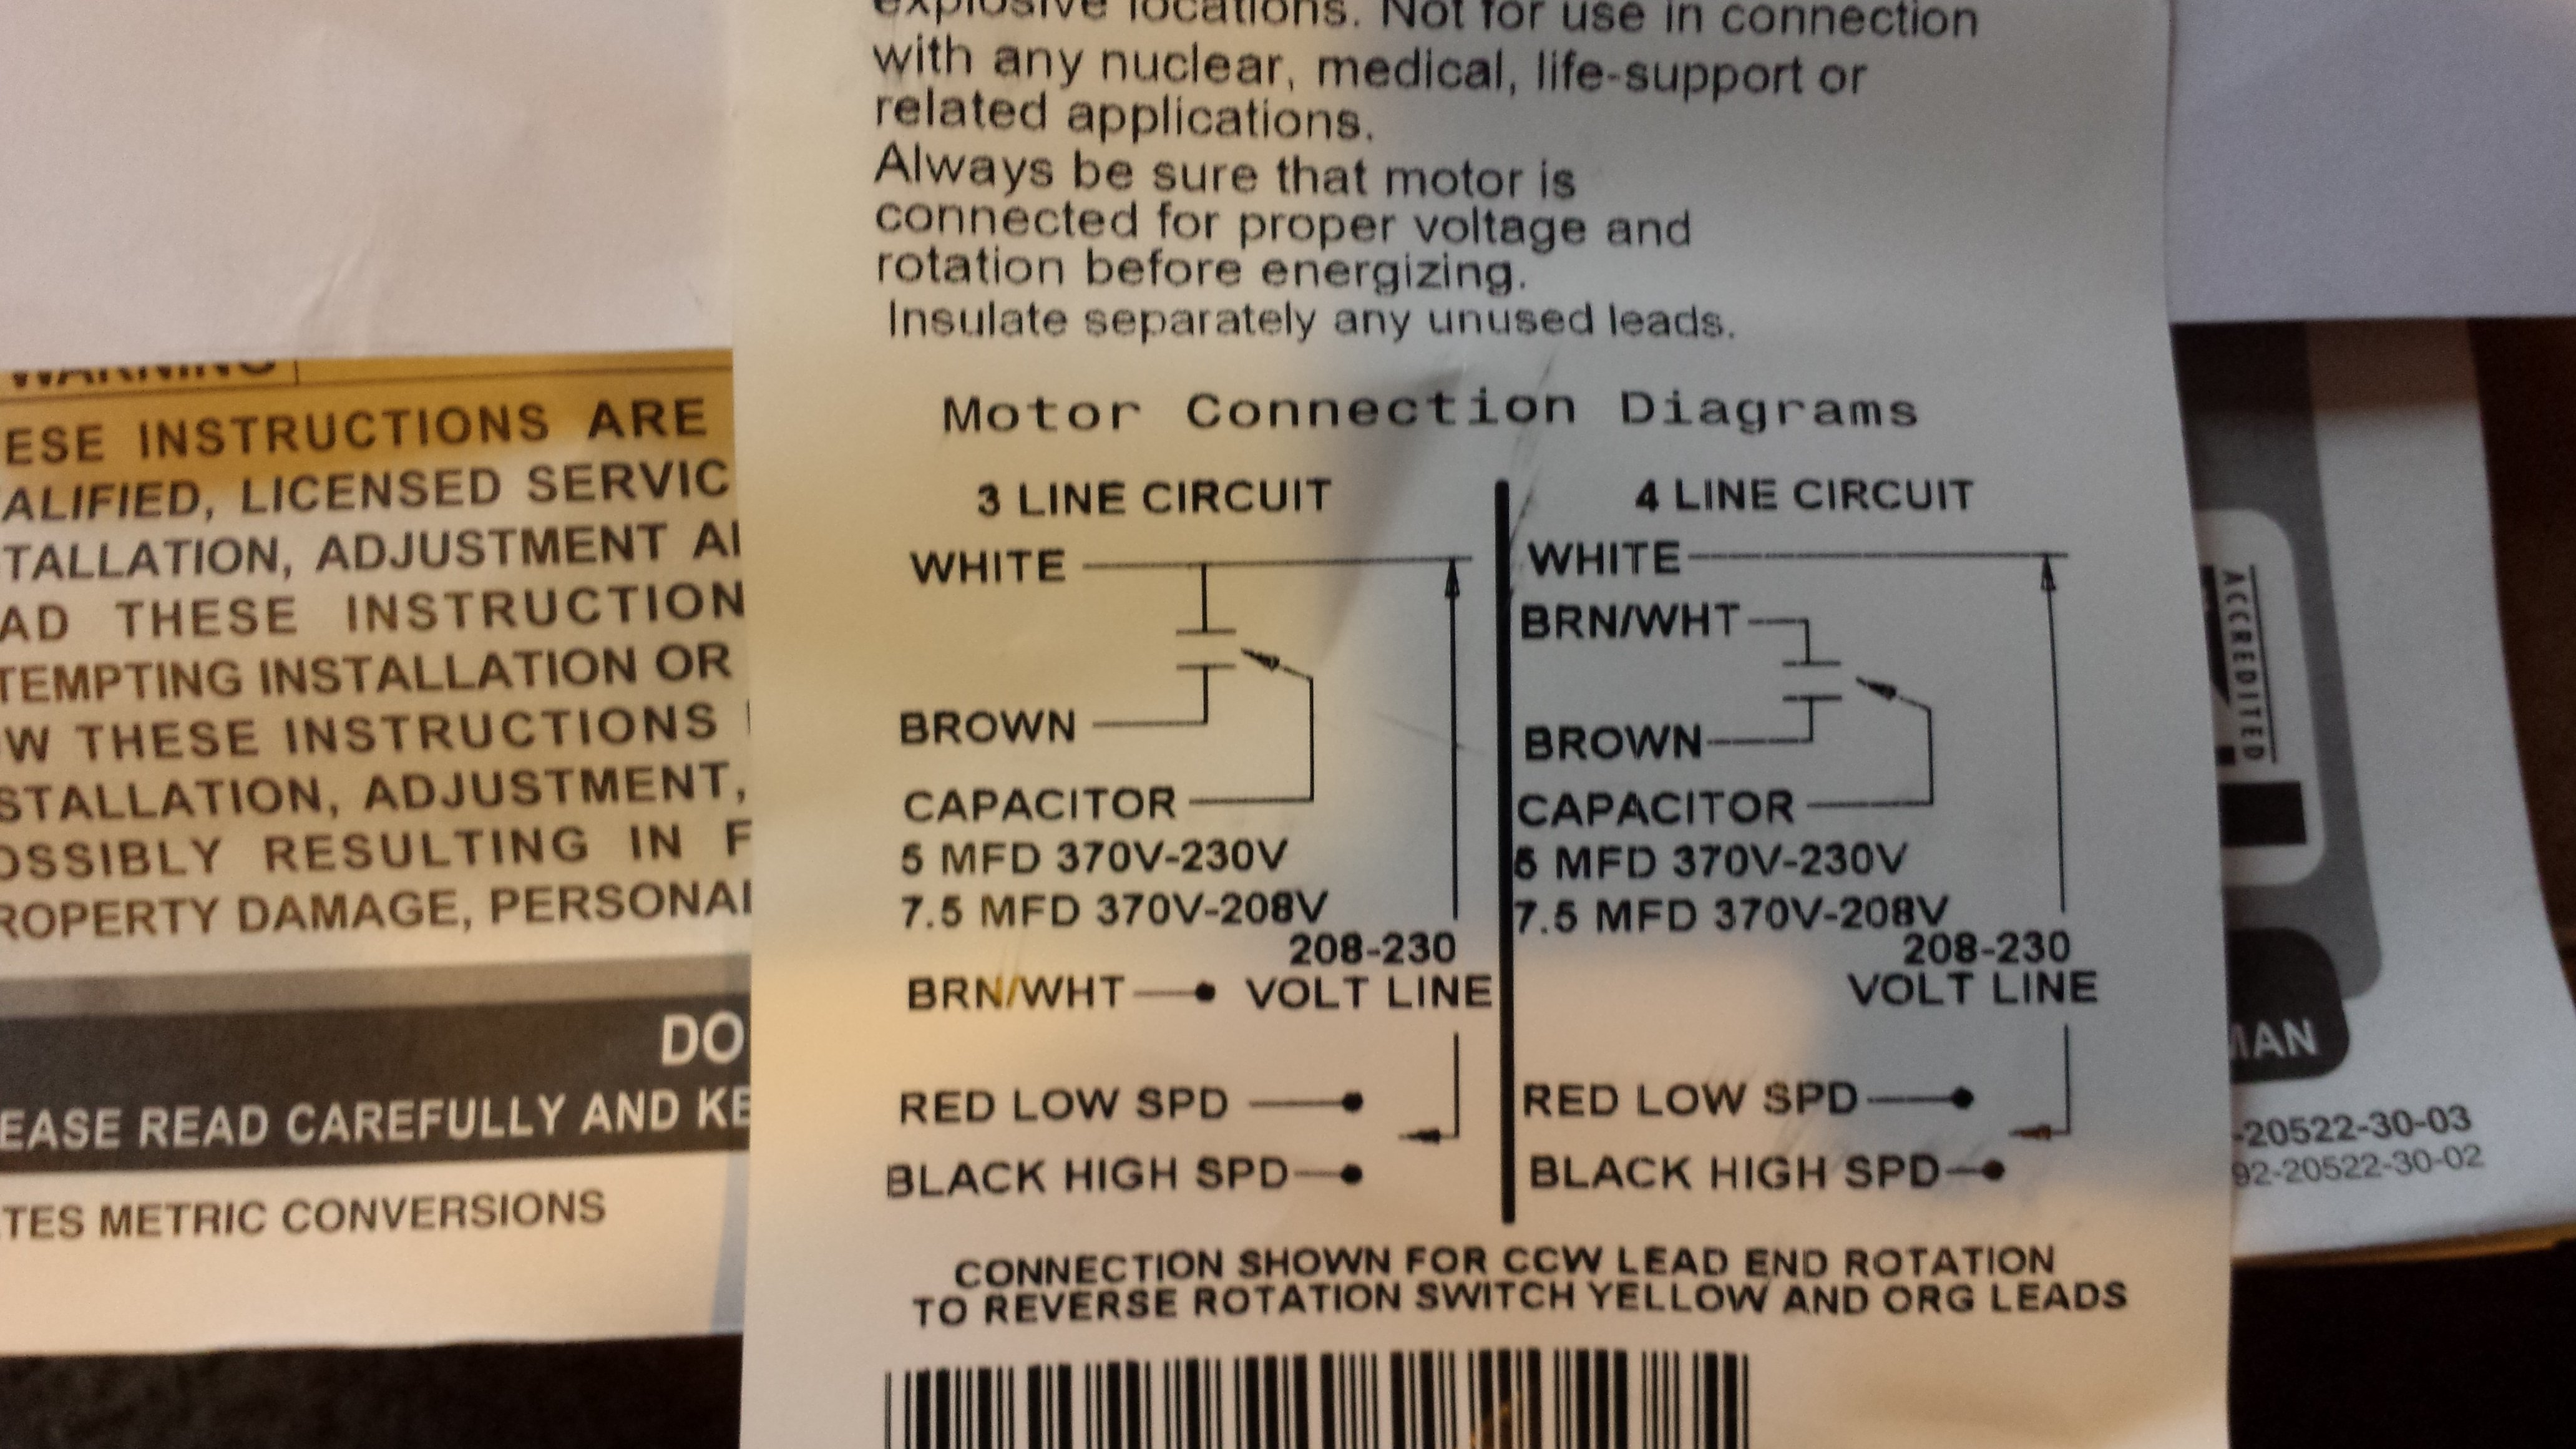 I Am Replacing The Condenser Fan Motor Old Has 3 Wires On Ac Run Capacitor Wiring Diagram To Dayton It Brown Black Orange Side Defrost Board